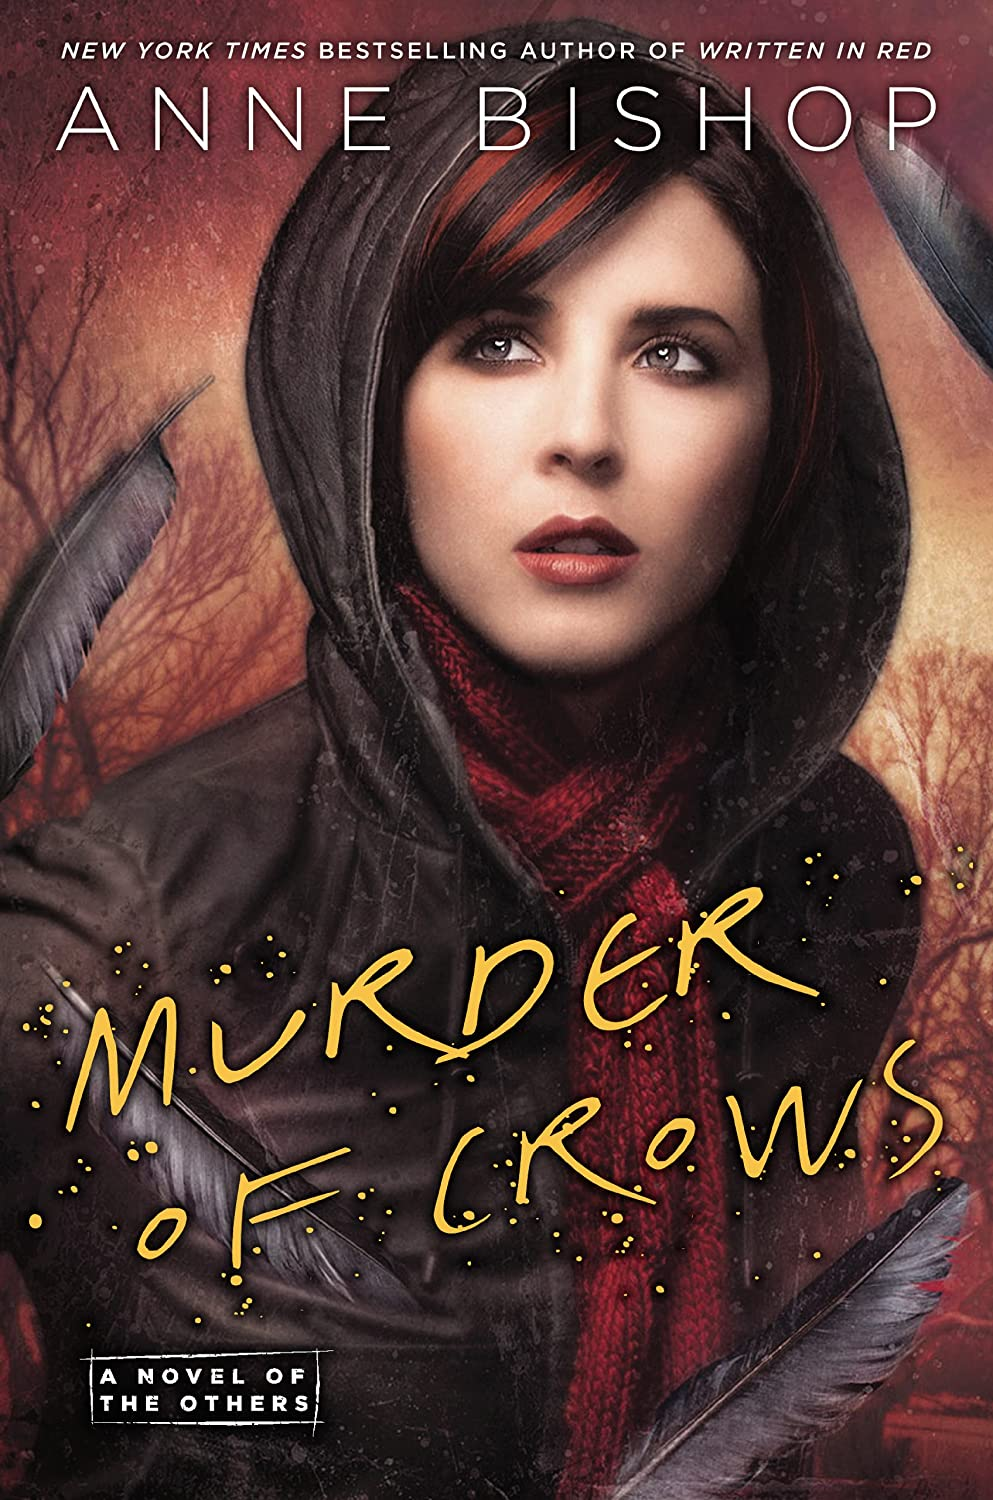 The Others #2: MURDER OF CROWS